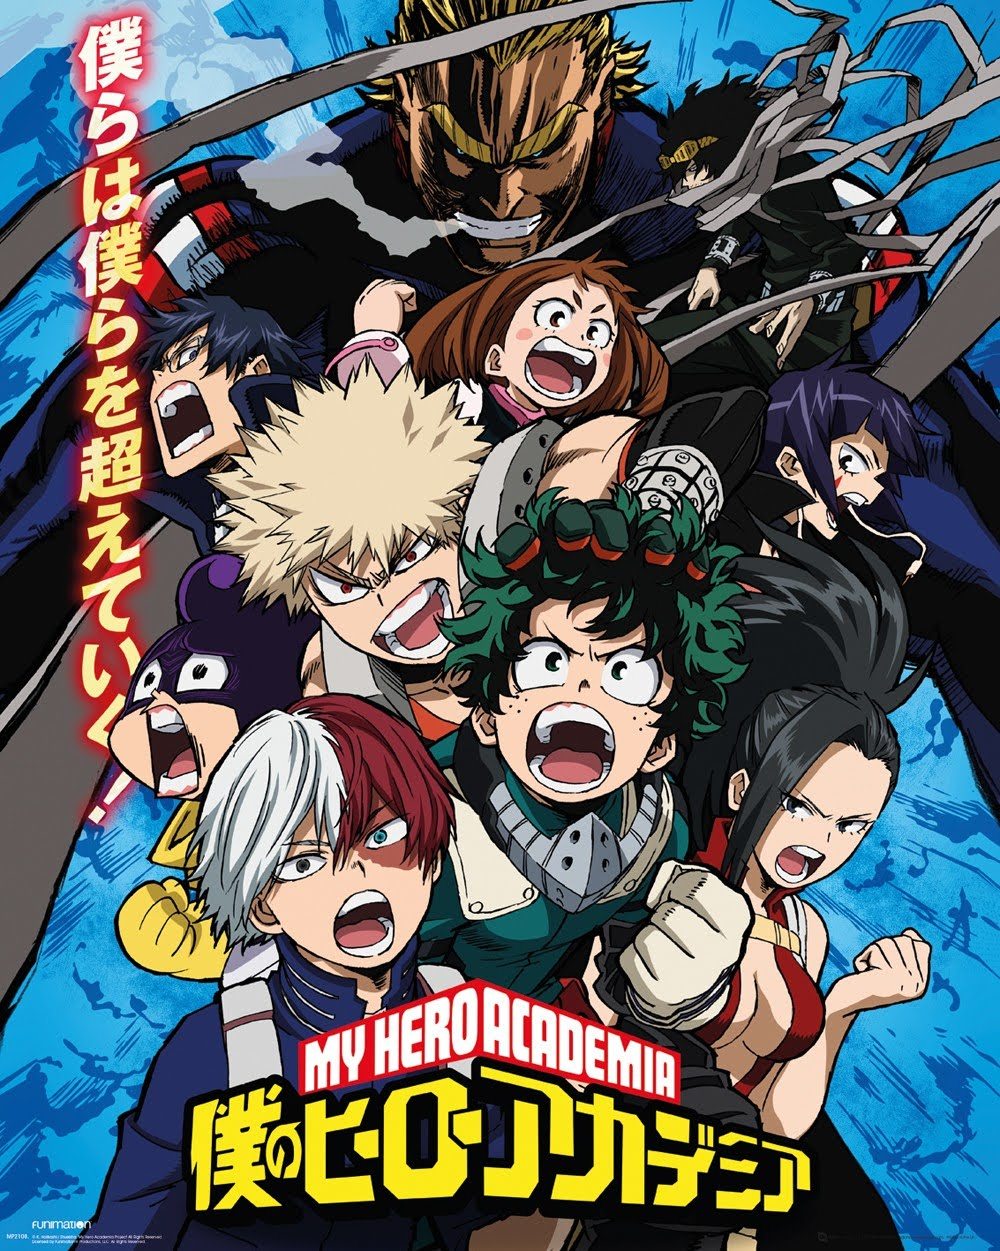 Watch Boku no Hero Academia Episode 1 English Subbed at...